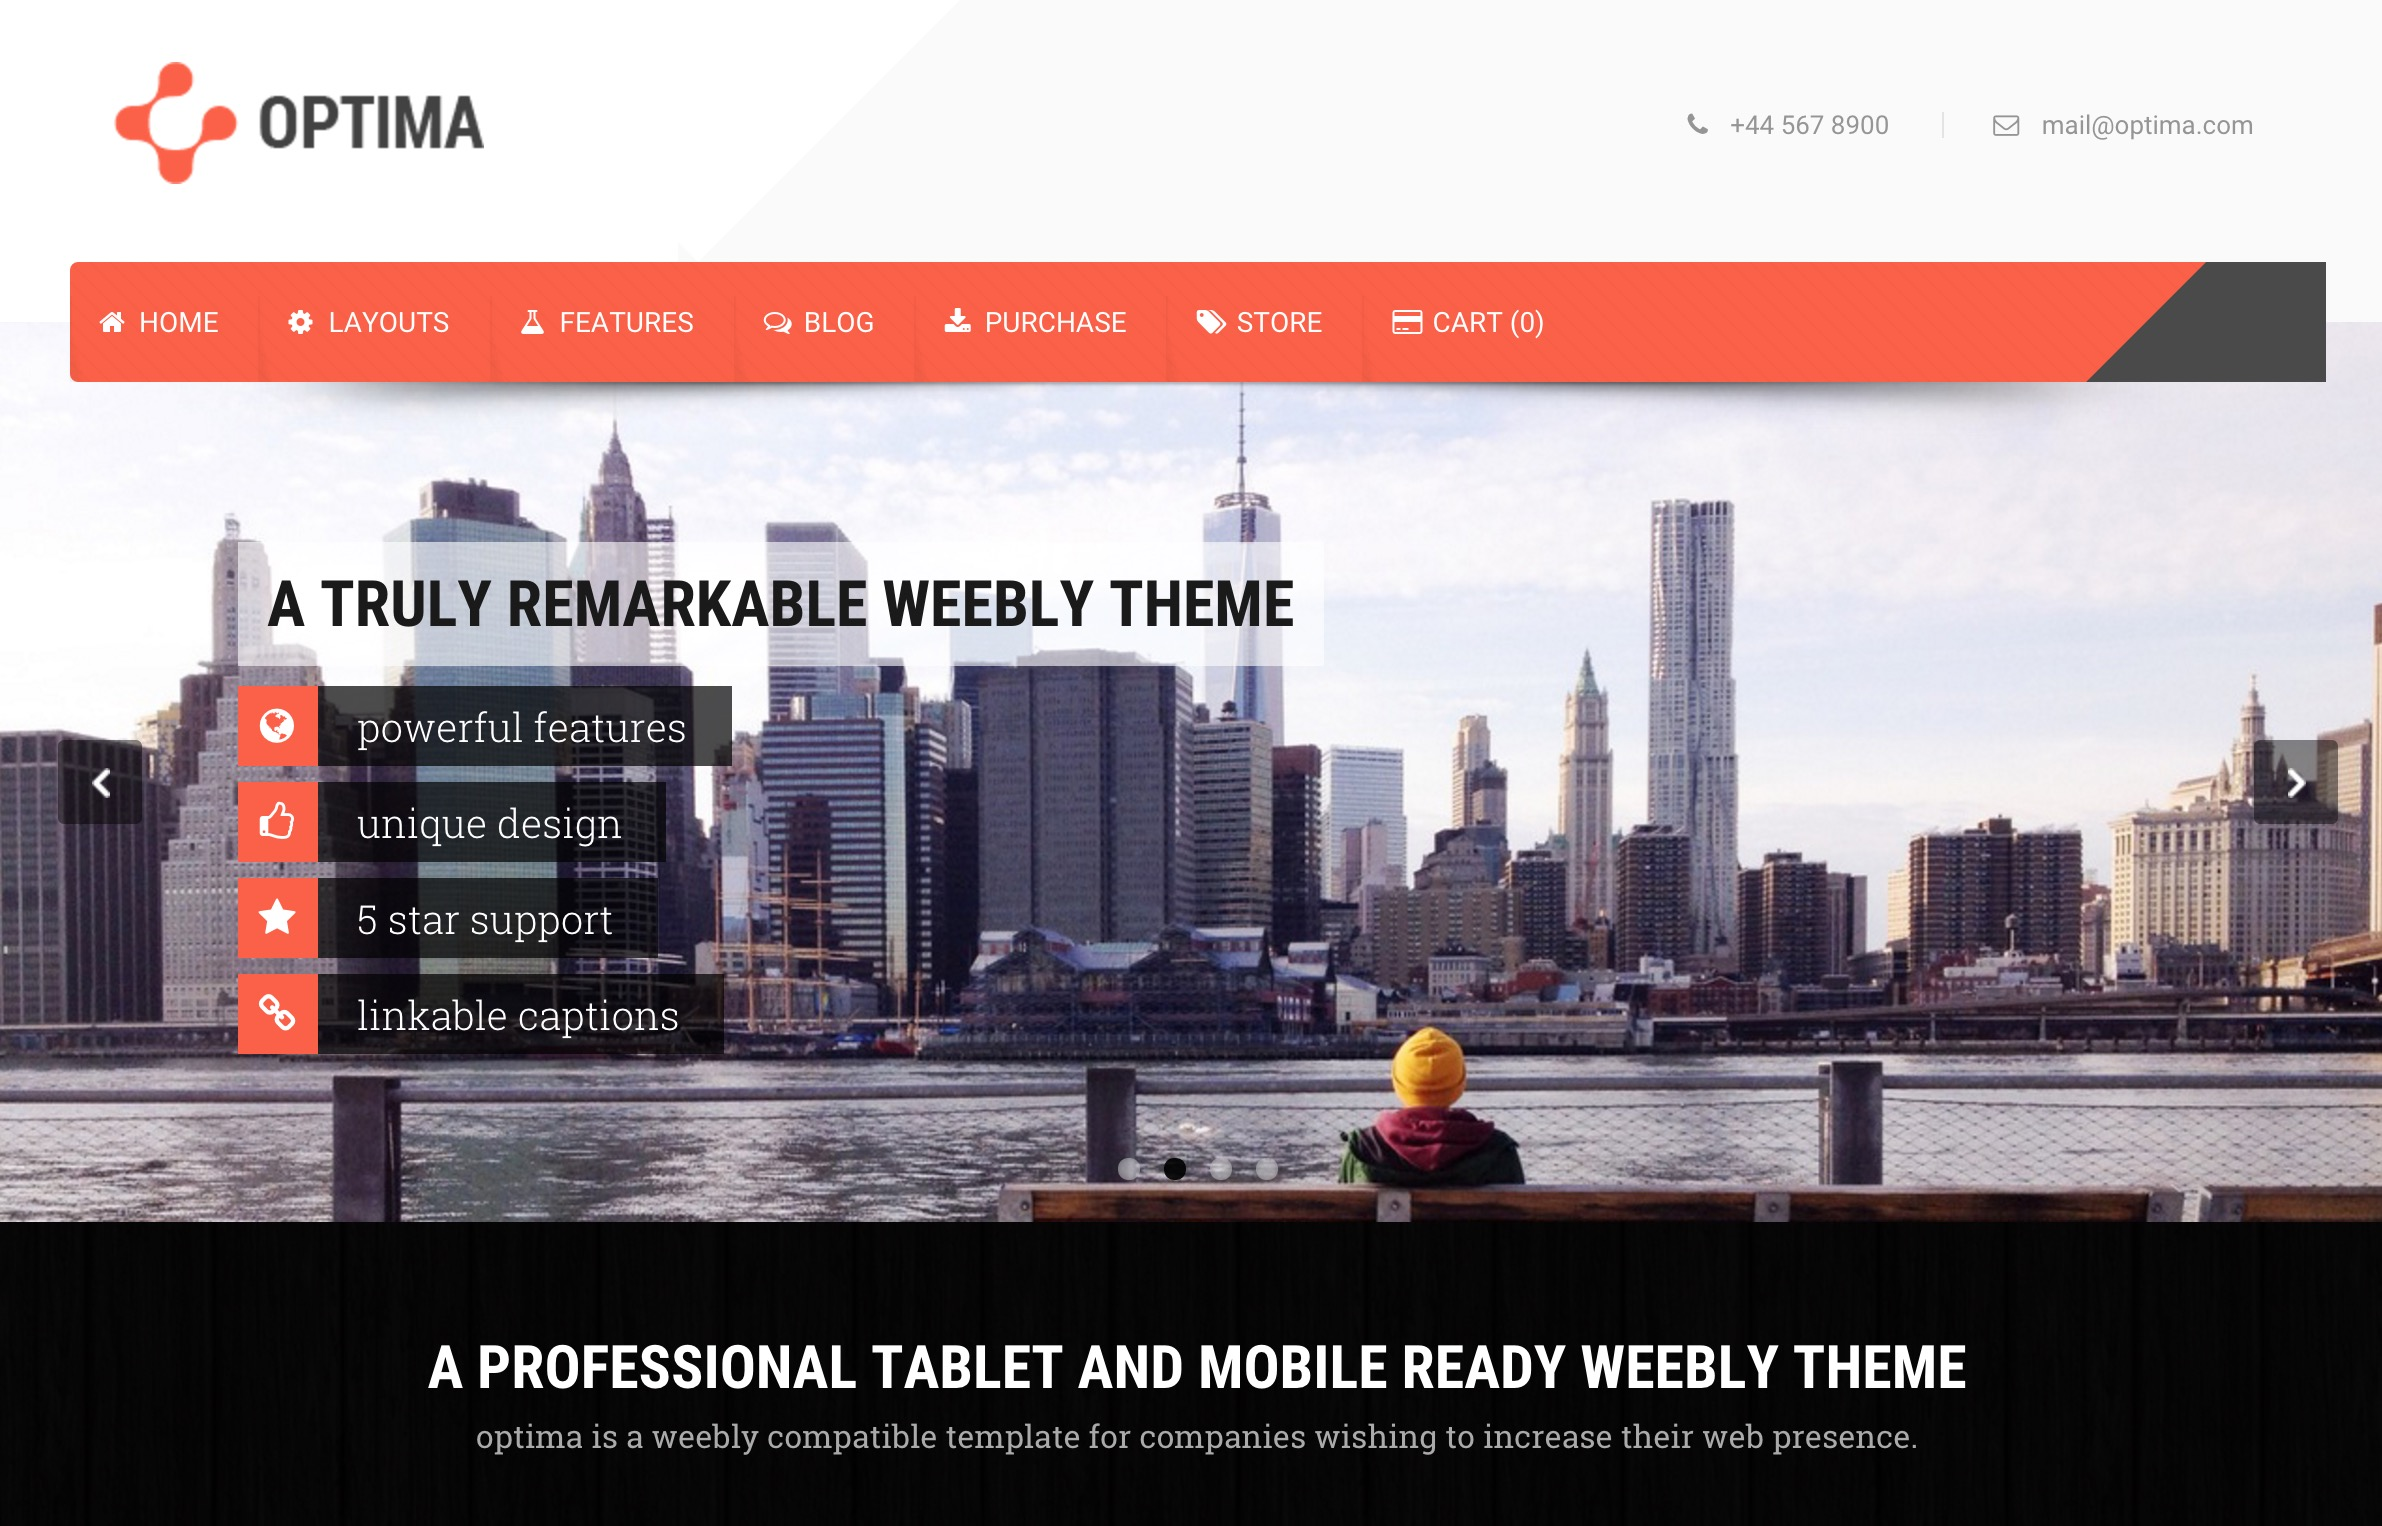 56 Weebly Templates and Designs for Advanced Websites